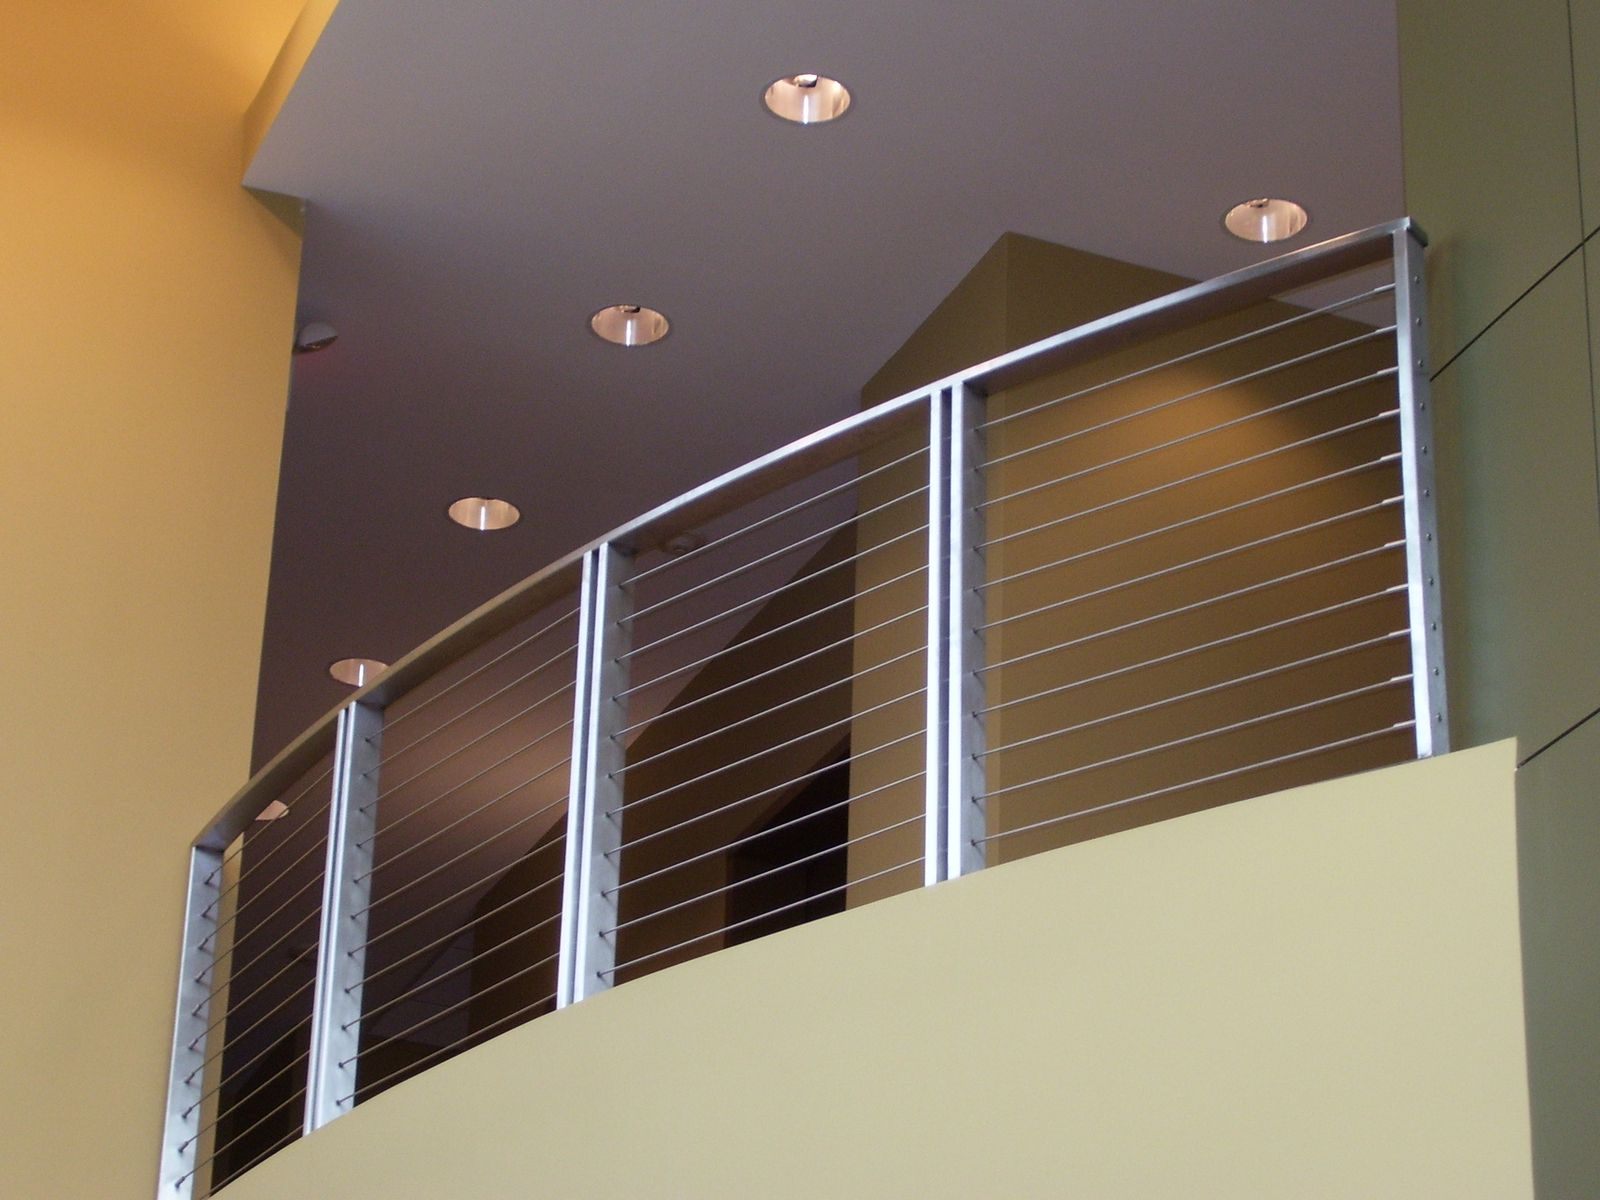 Handmade Stainless Steel Cable Balcony Rail By Foreman